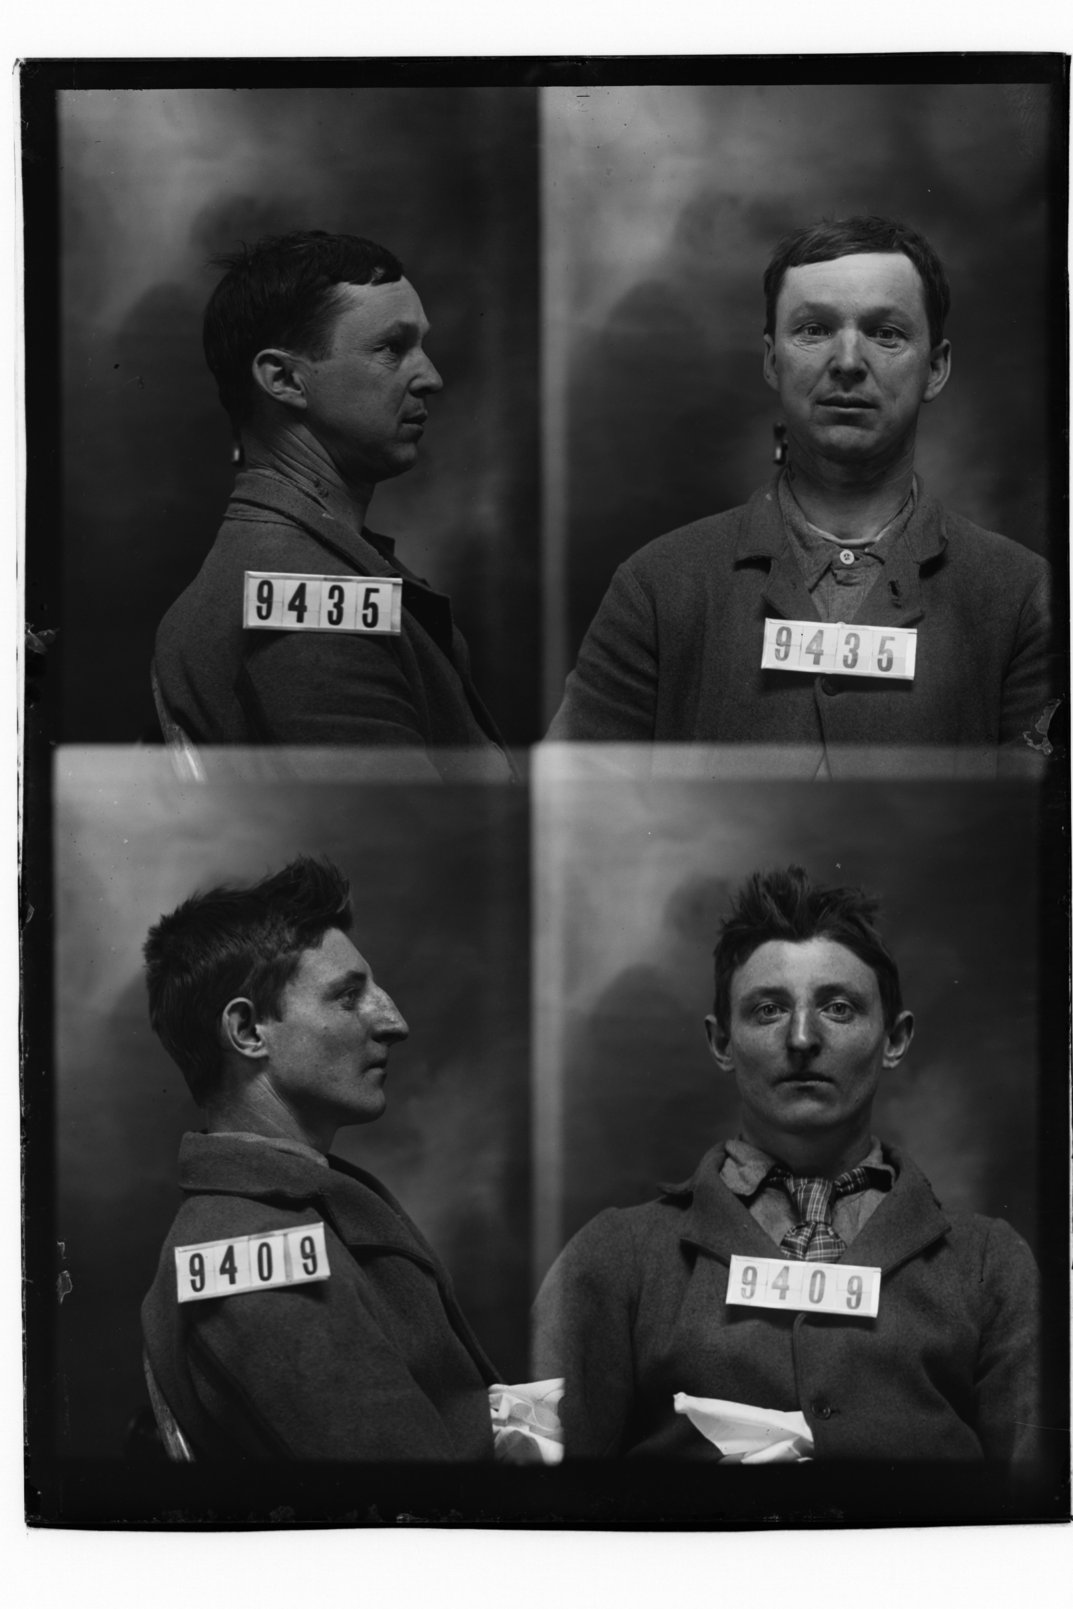 Andrew Mitchler and Thomas Finch, prisoners 9435 and 9409